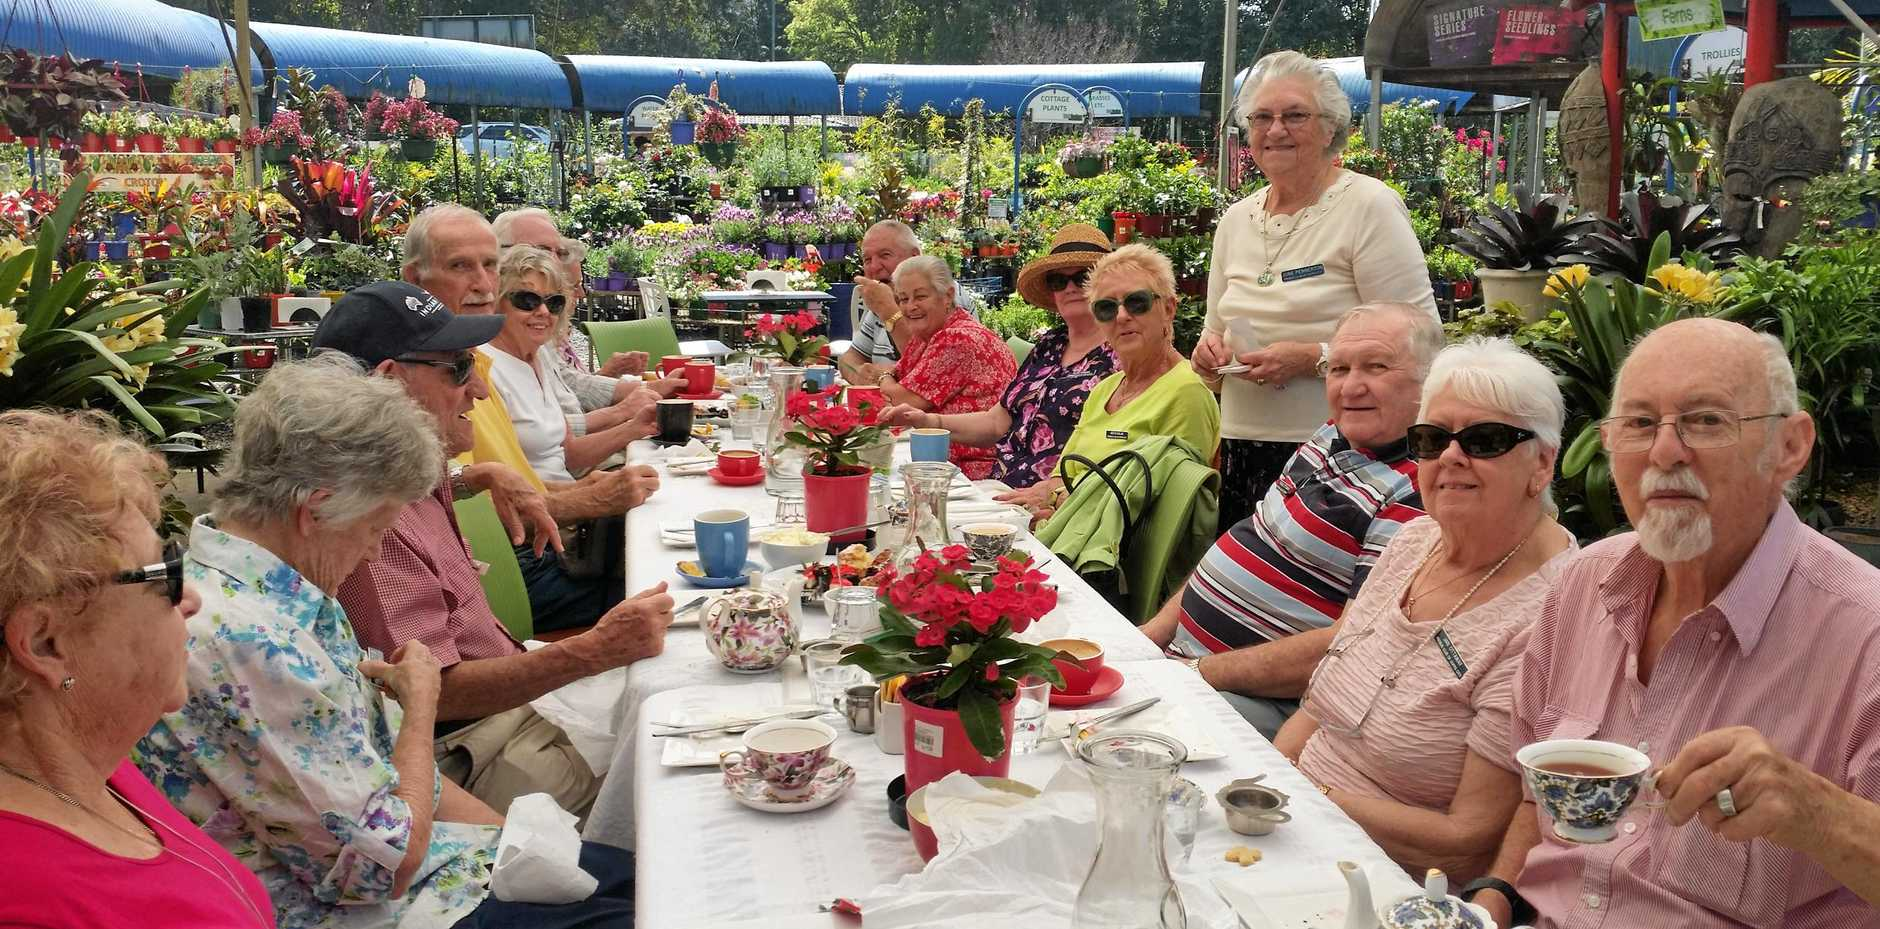 COLOURFUL GROUP: Members of the Probus Club of Coffs City recently had a very enjoyable morning tea amongst the spring time display at Total Gardens.